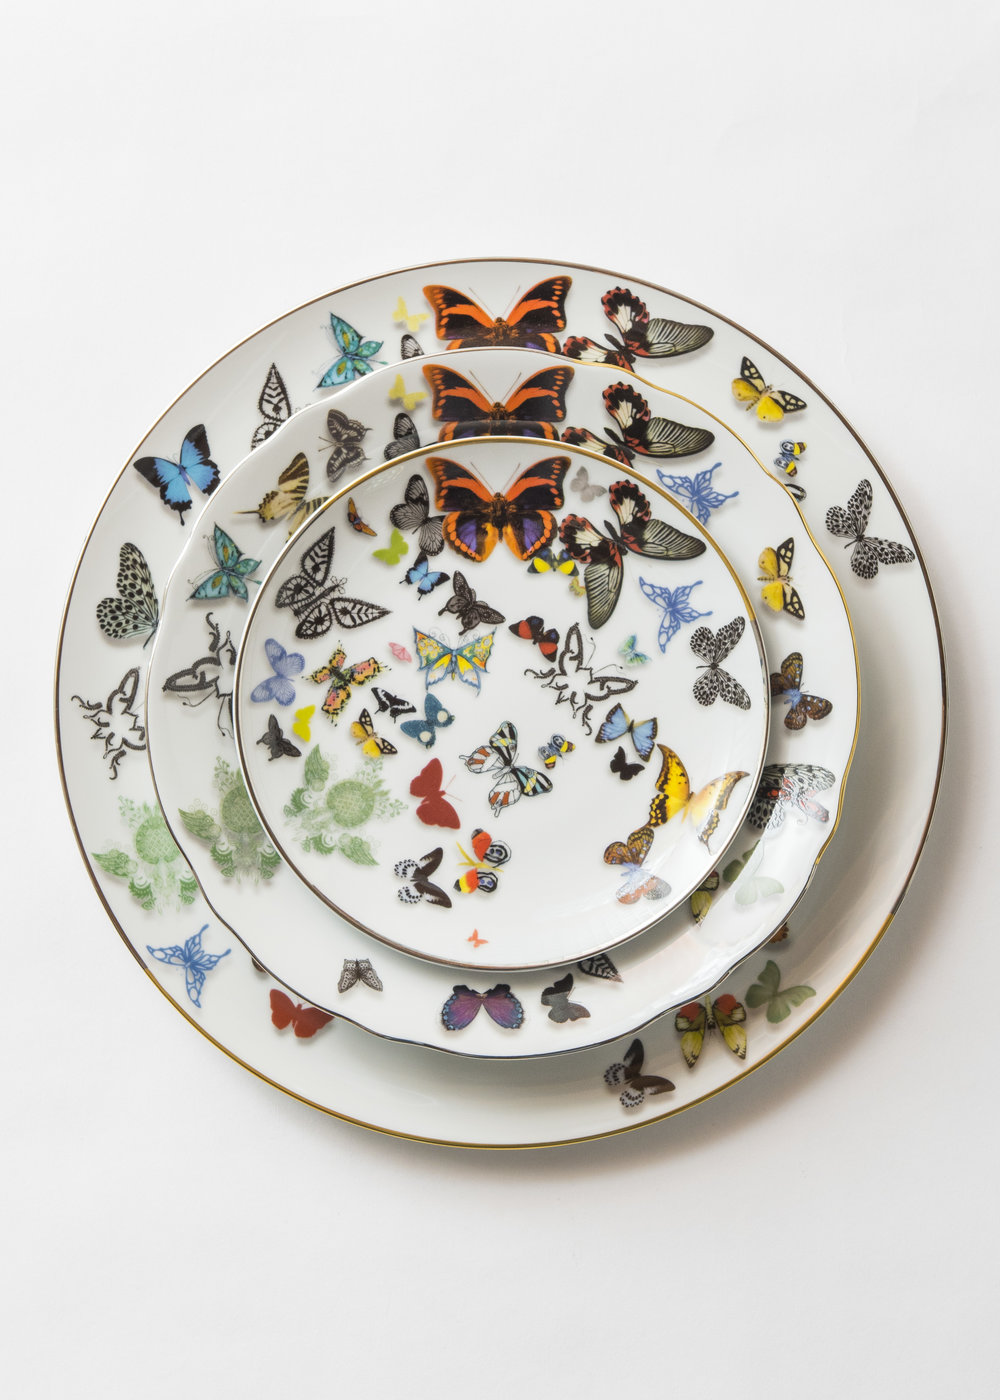 CHRISTIAN LACROIX | BUTTERFLY PARADE & CHRISTIAN LACROIX | BUTTERFLY PARADE u2014 Casa de Perrin